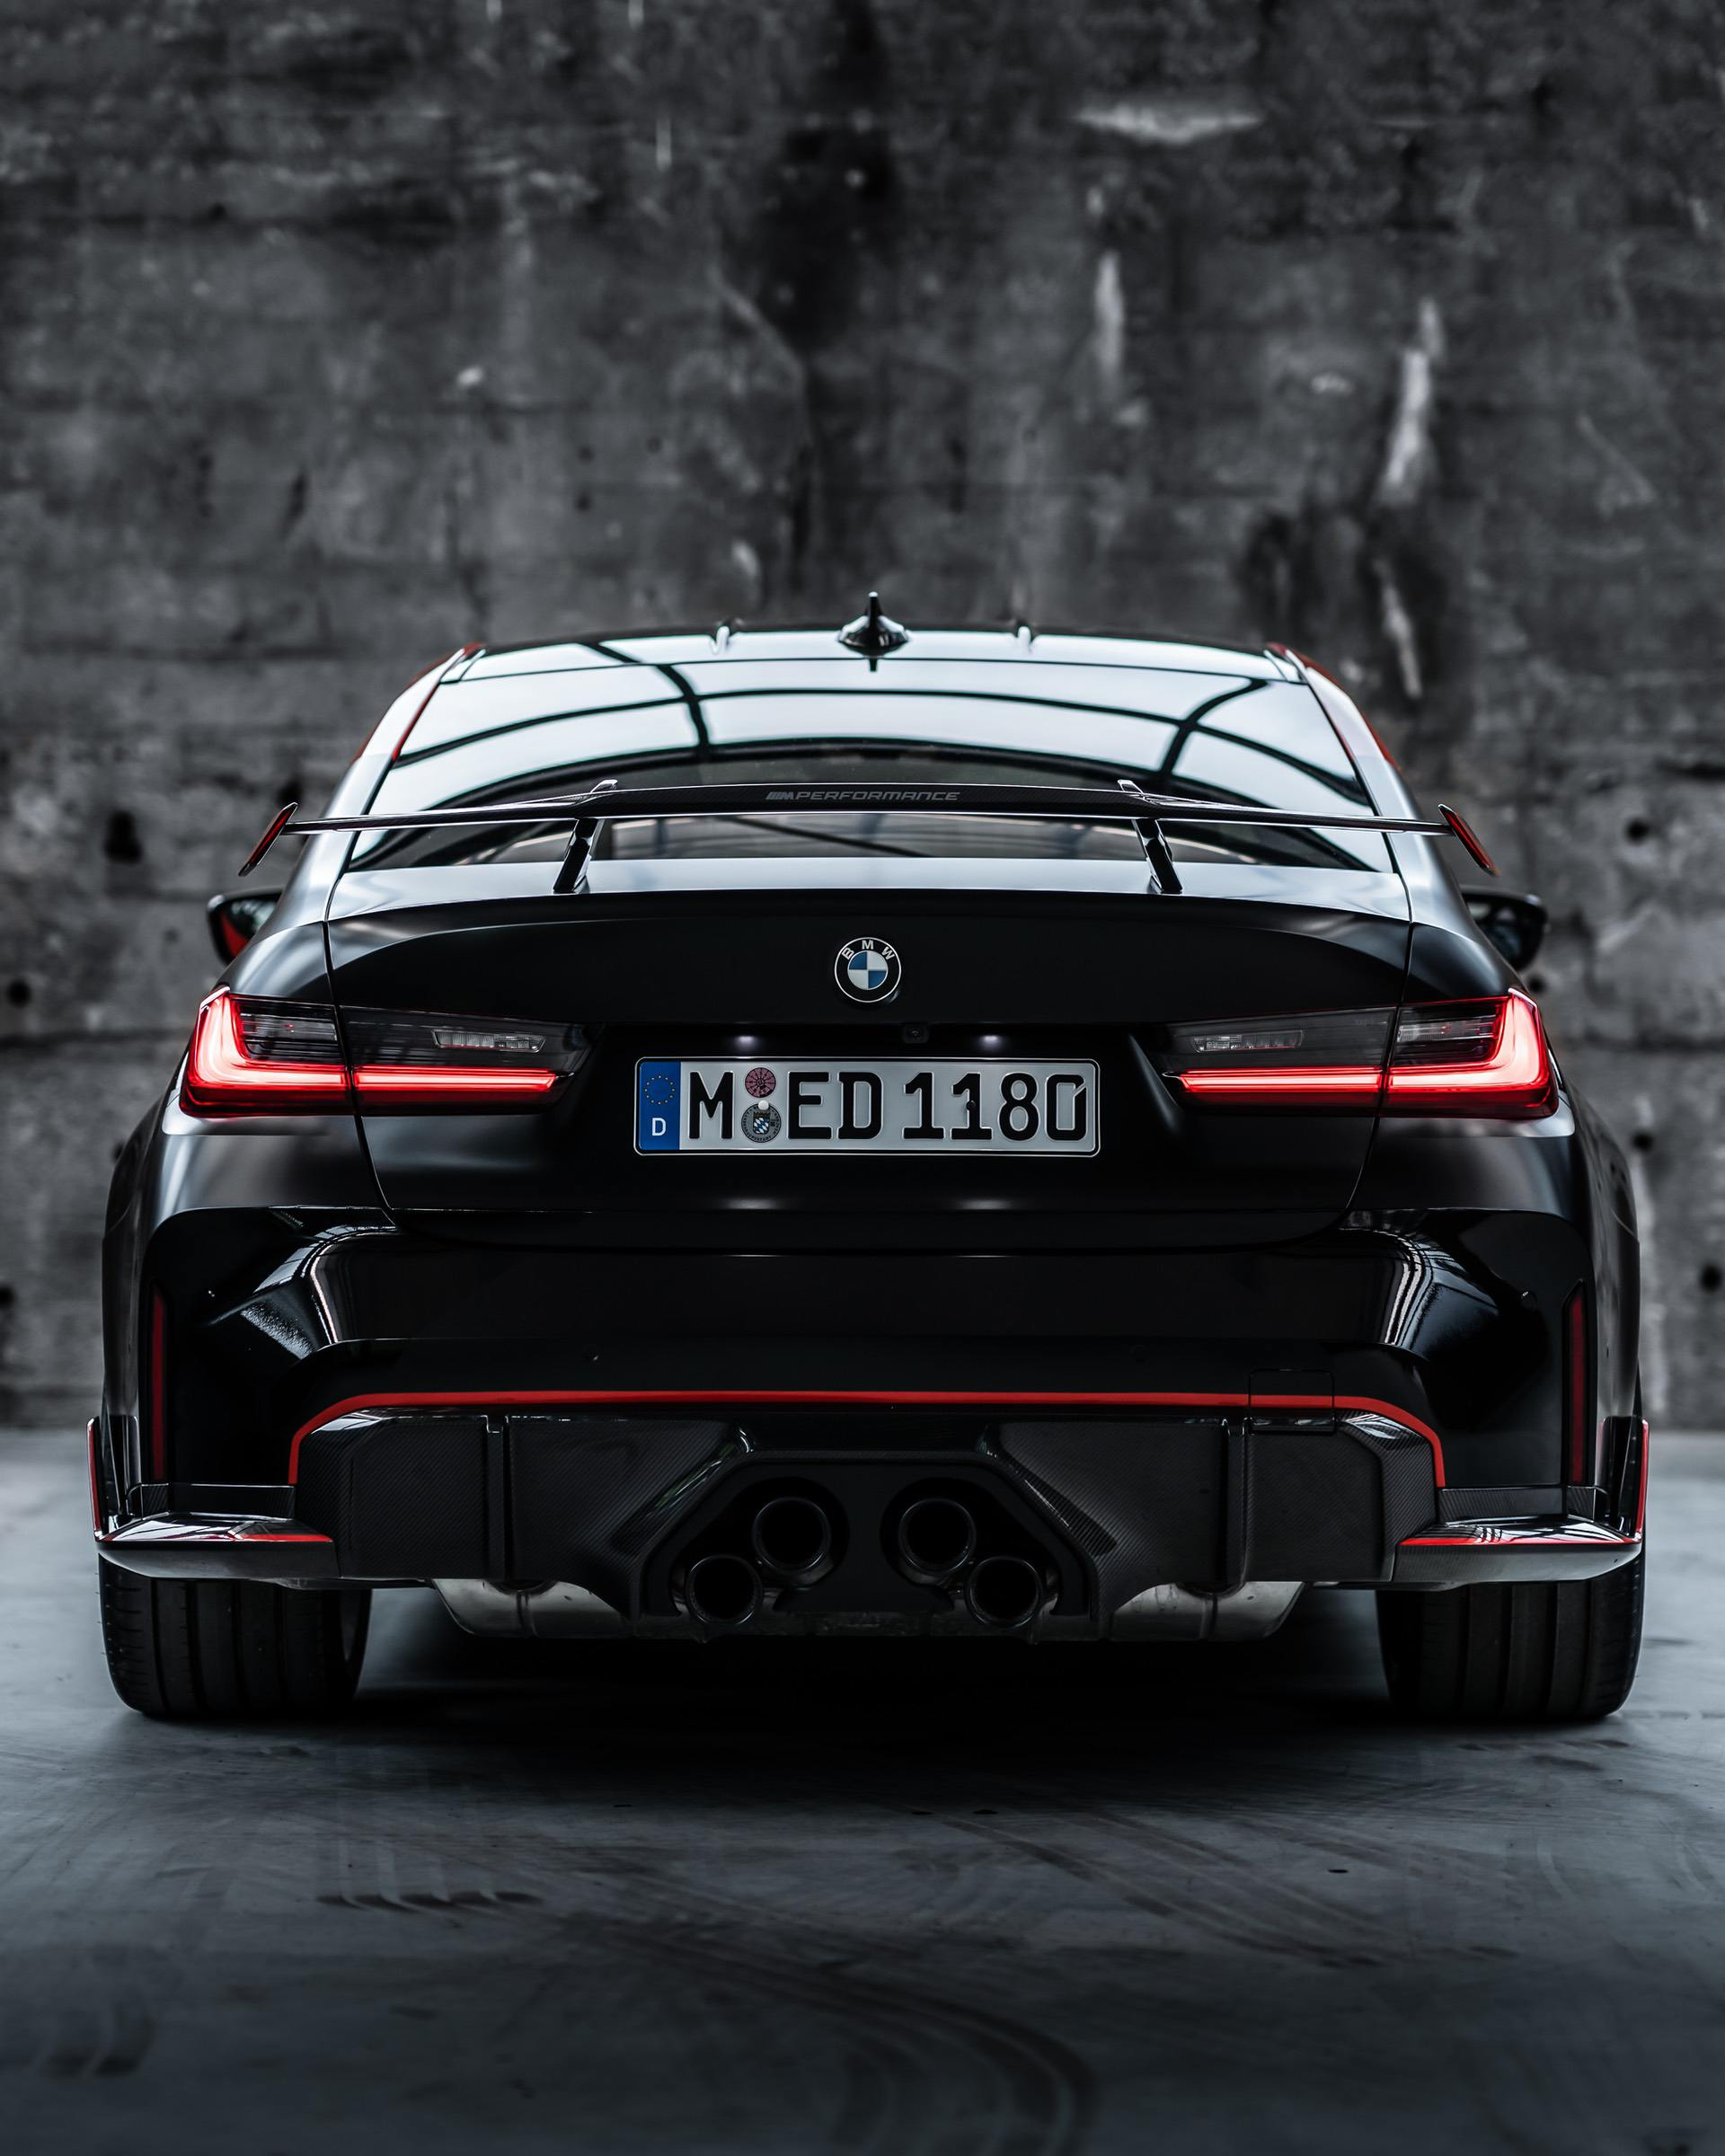 2021 Bmw M3 With M Performance Parts A New Photo Gallery